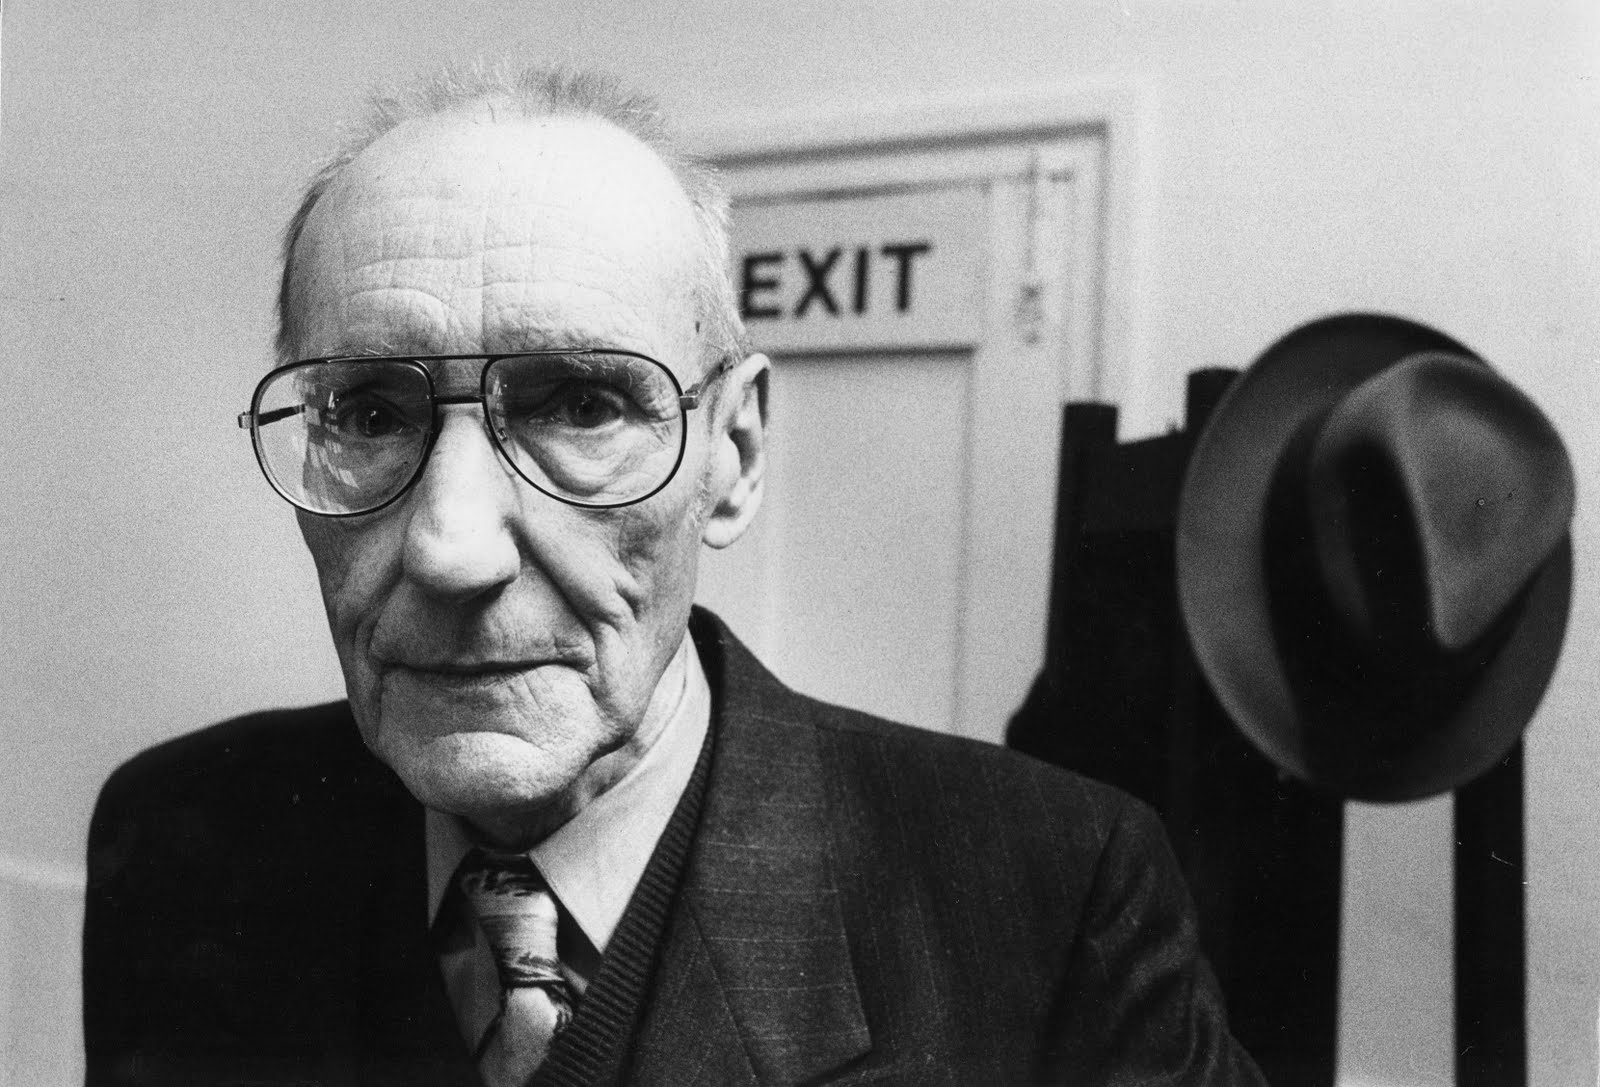 http://4.bp.blogspot.com/_tnGAt-hymK4/S7-7PvZ06tI/AAAAAAAACV8/55foqDQnxSE/s1600/william-burroughs-london-1988.jpg